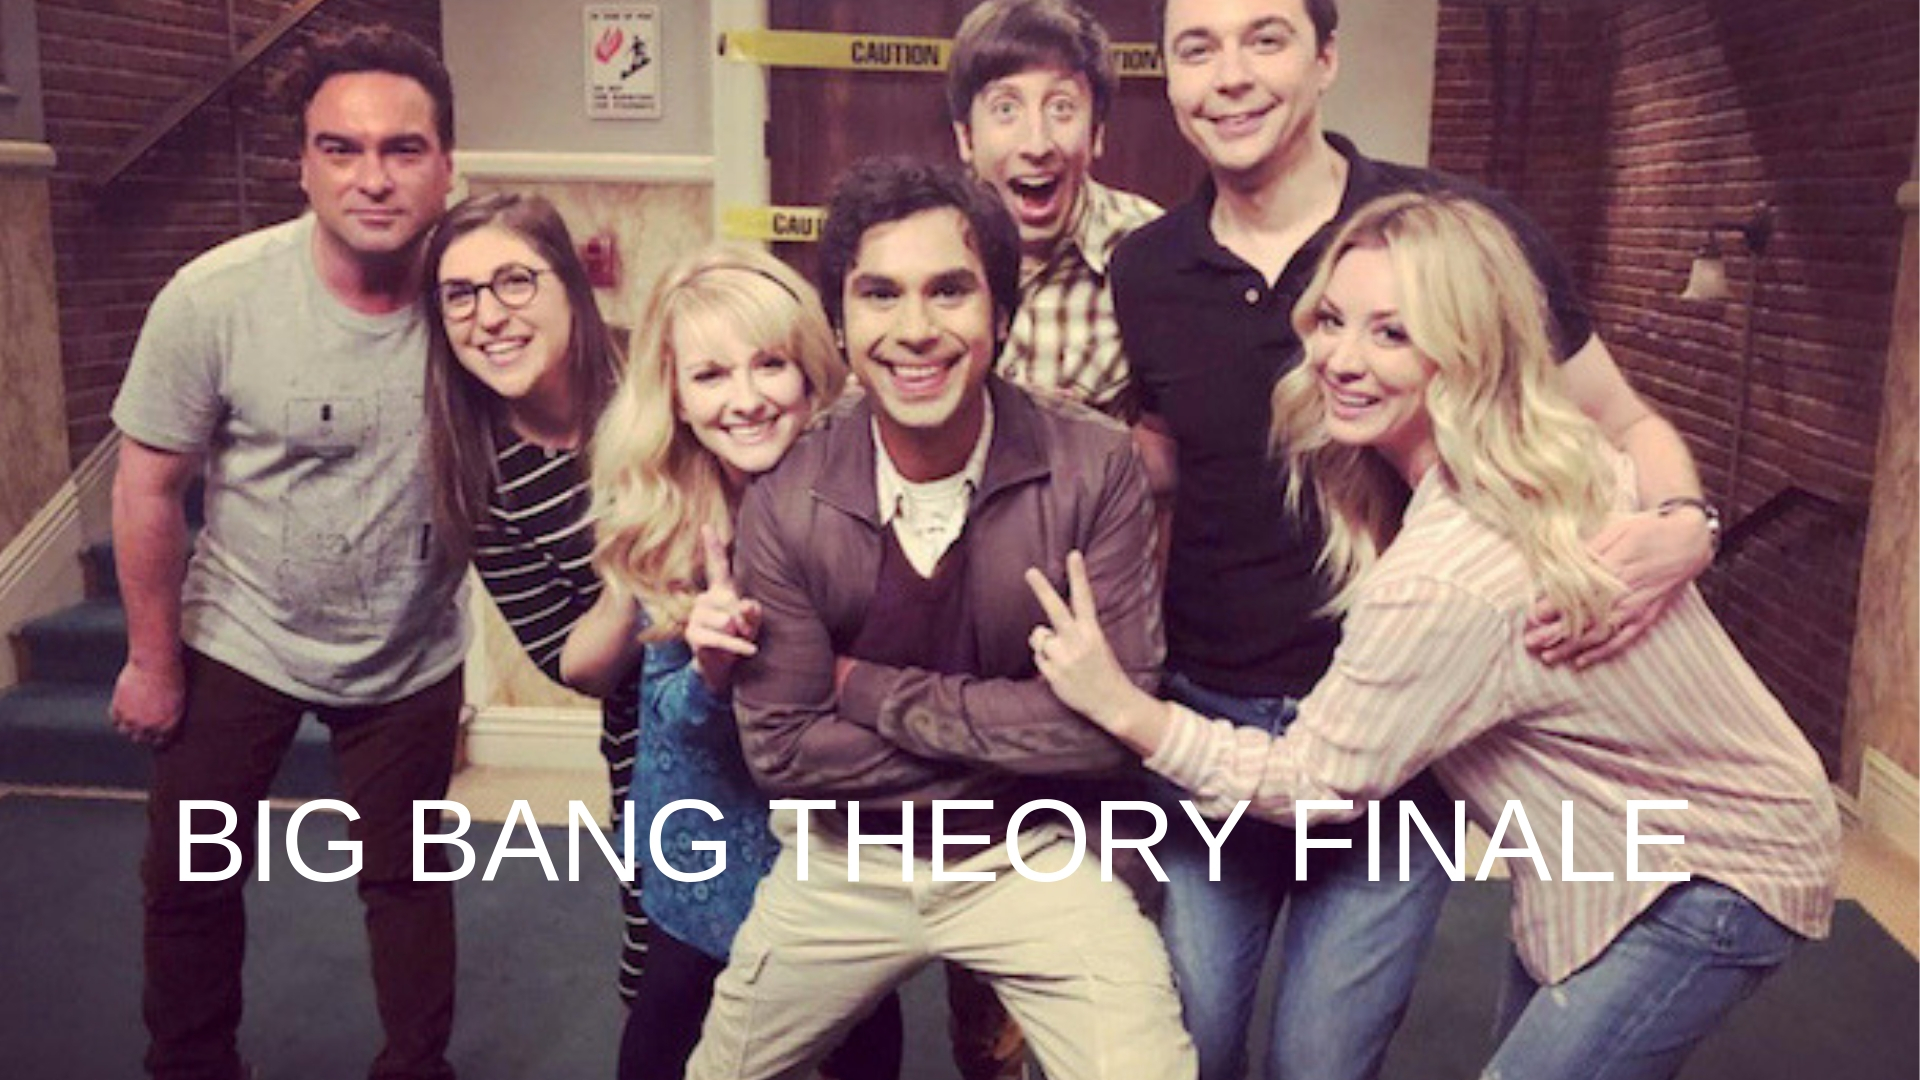 BIG BANG THEORY FINALE